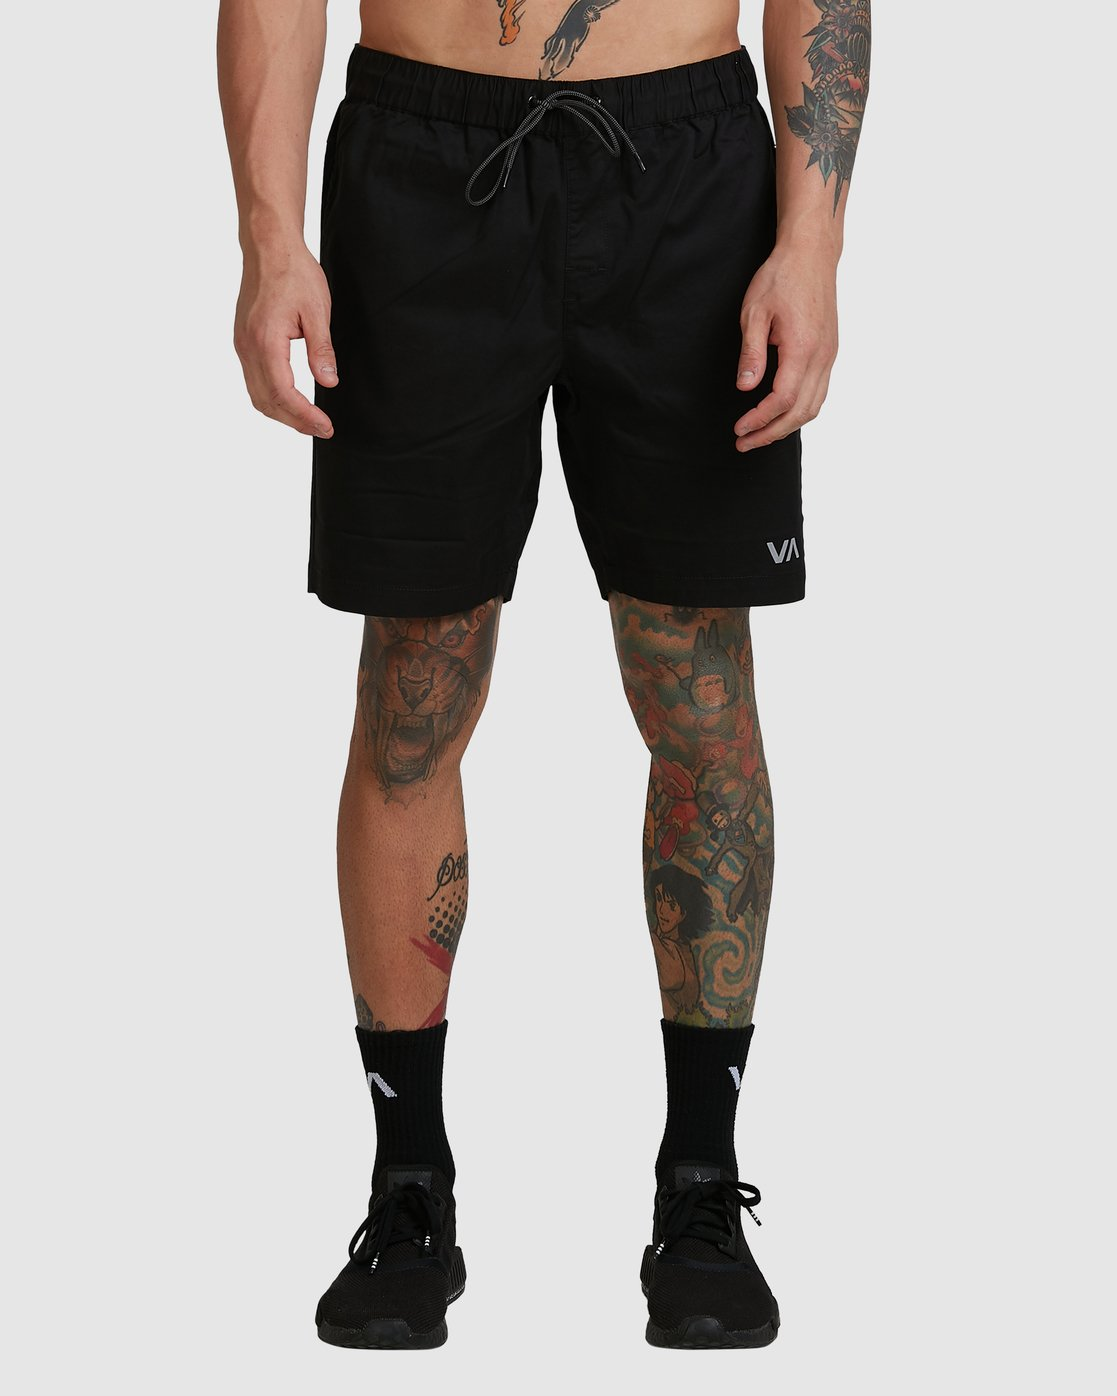 1 SPECTRUM SHORTS Black R107311 RVCA